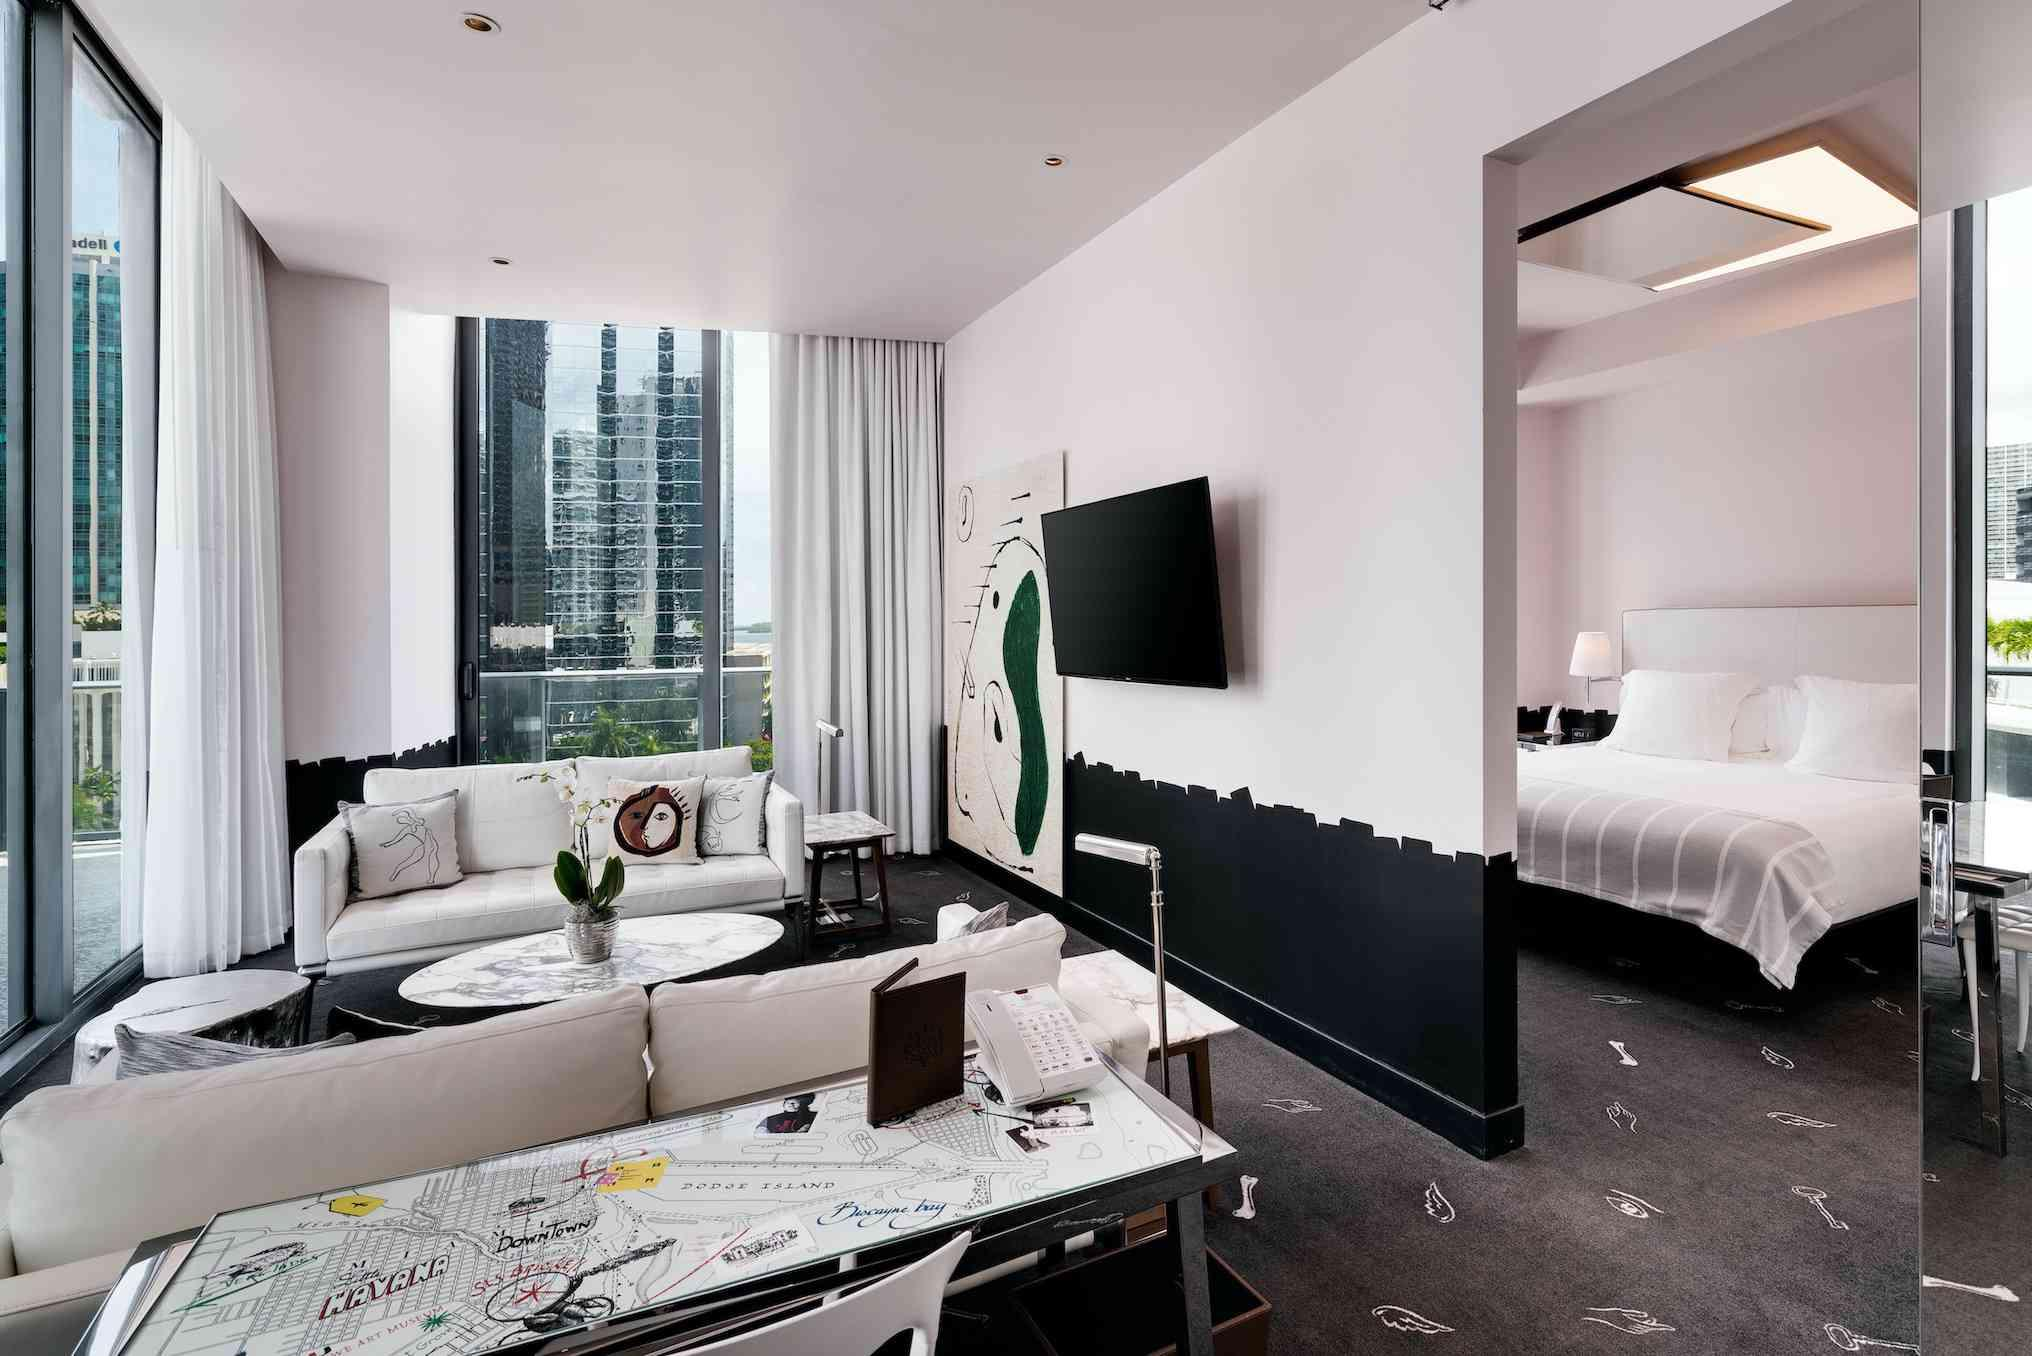 large living space with wall art and bedroom view